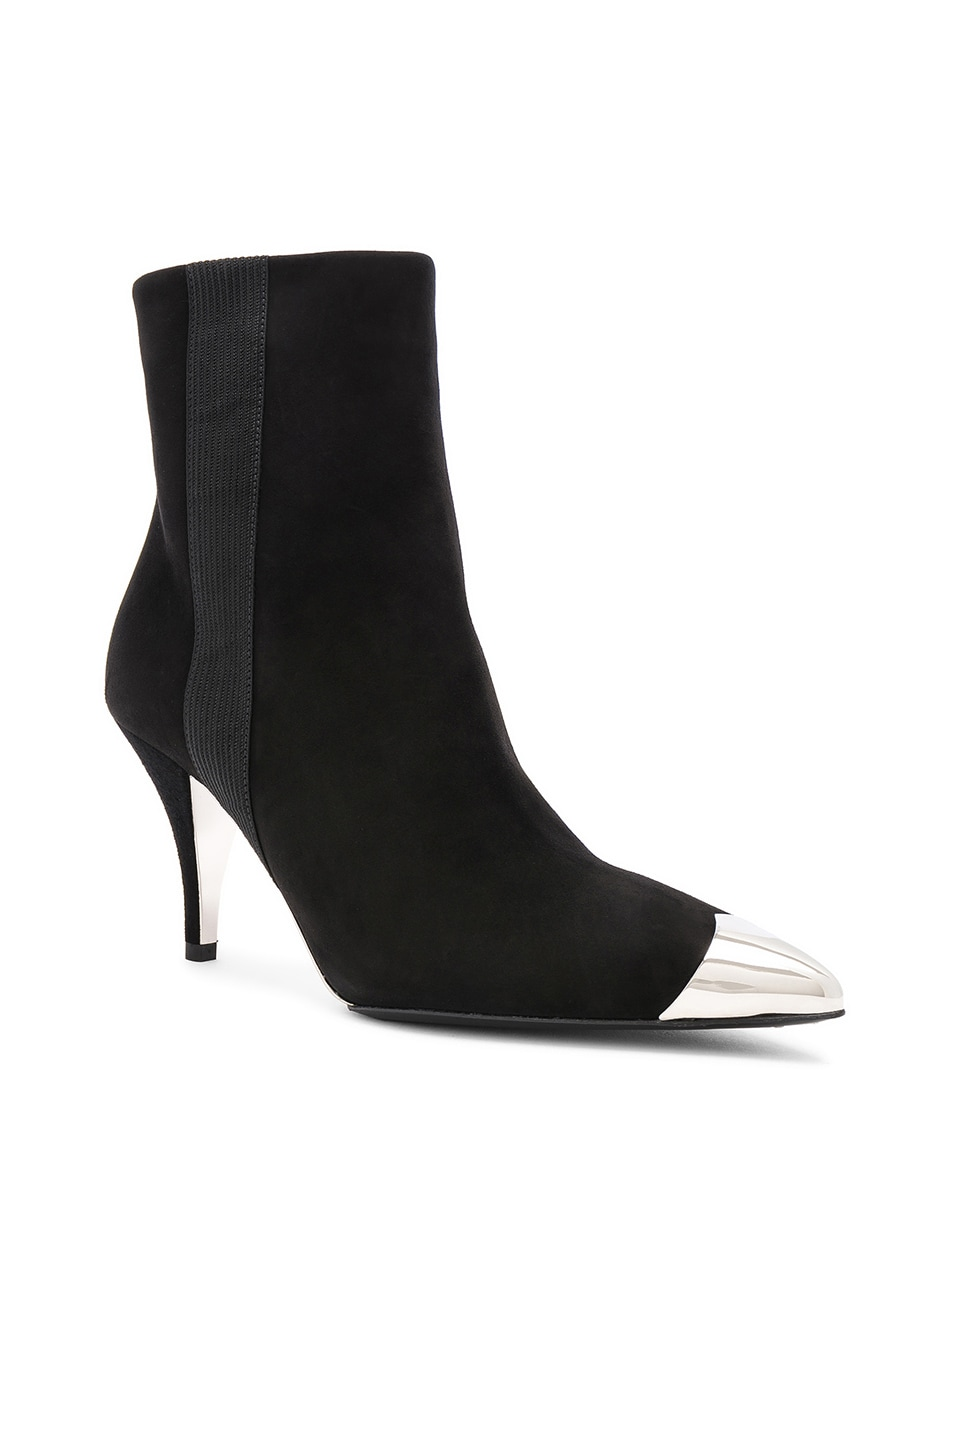 Image 2 of CALVIN KLEIN 205W39NYC Suede Rocio Stiletto Boots in Black